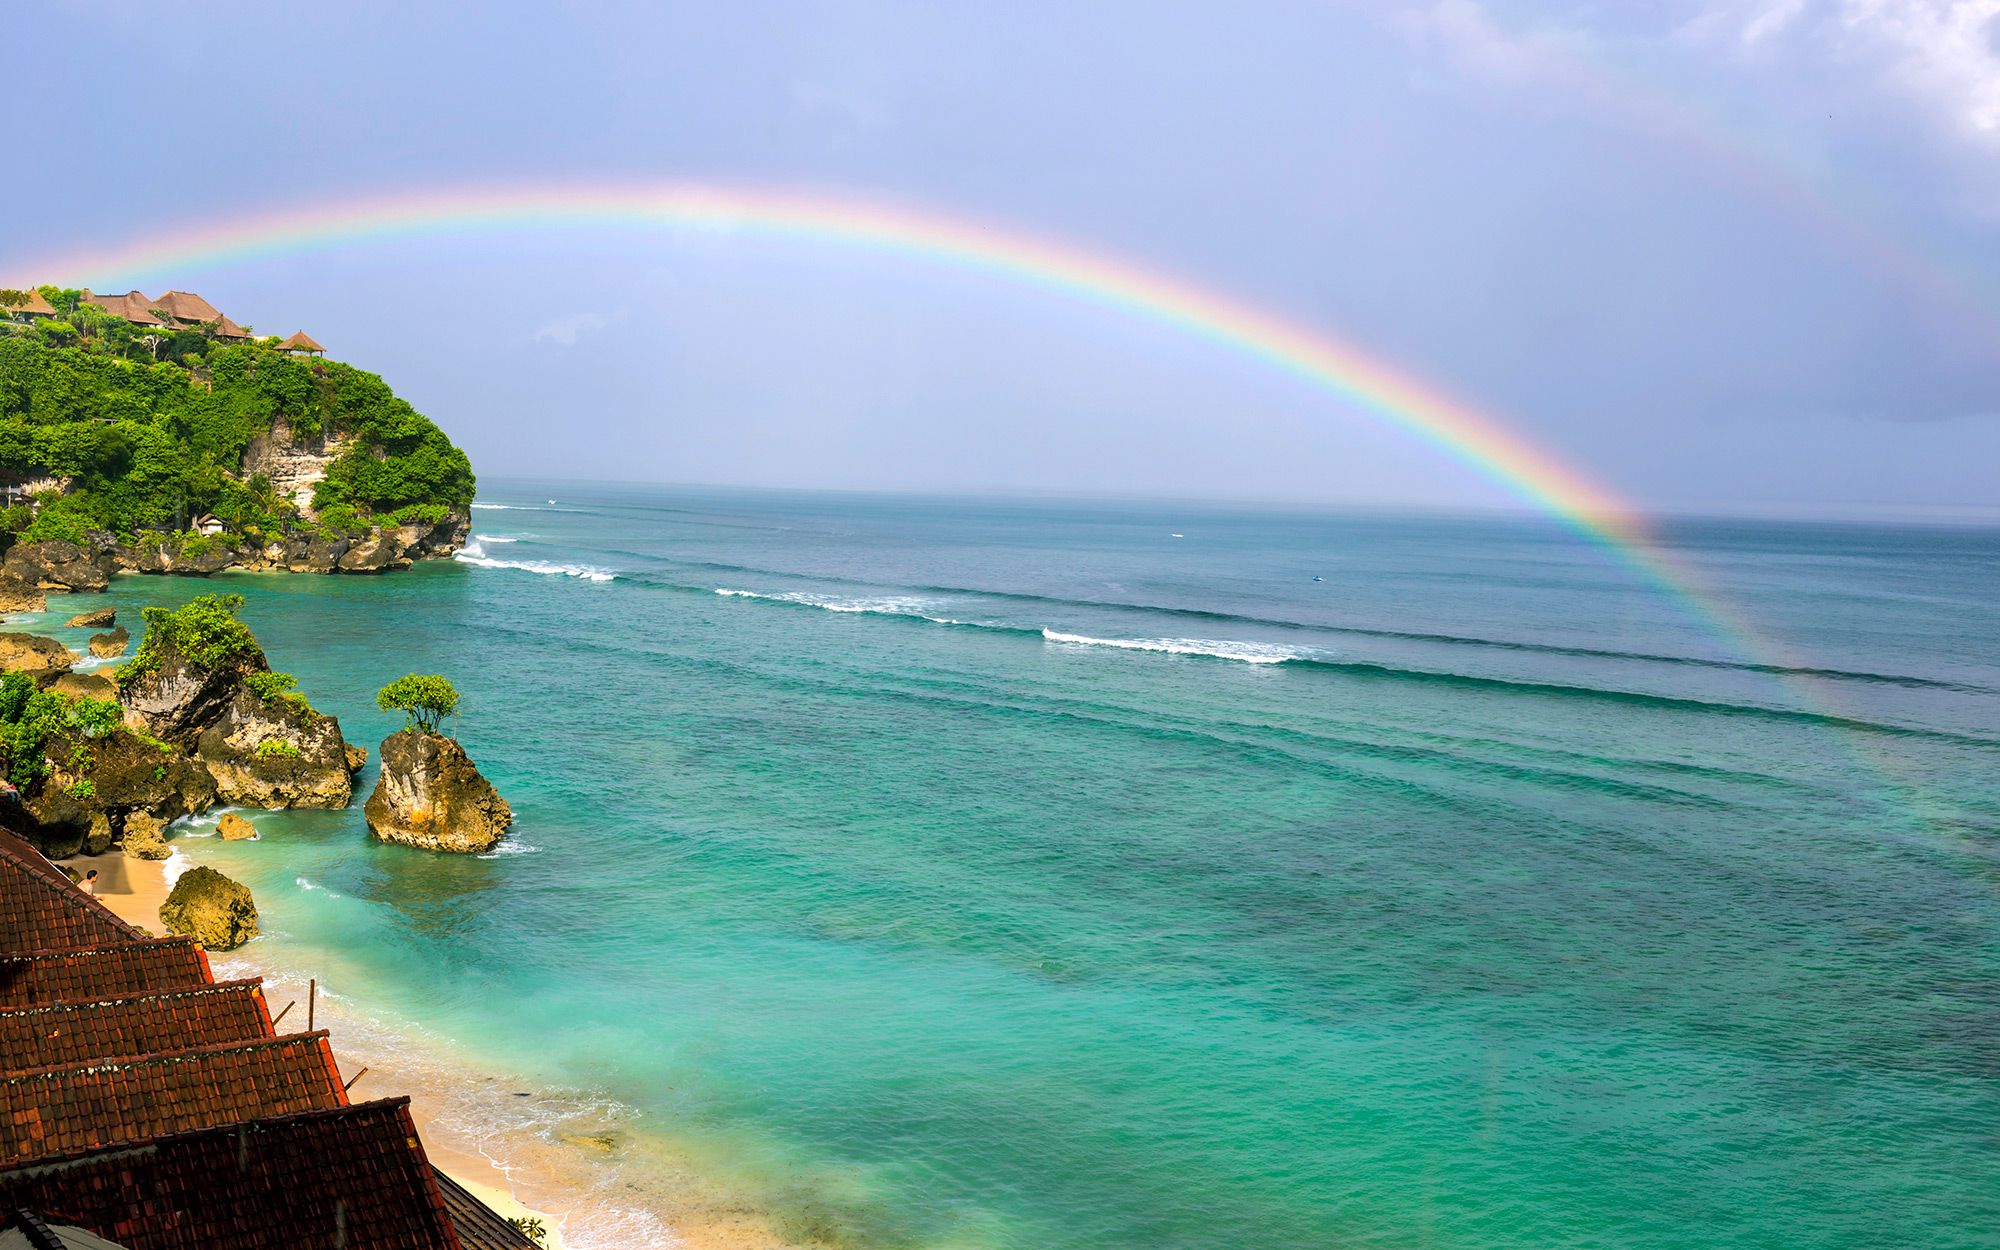 Rainbow over ocean,Bingin beach,Bali,Indonesia.